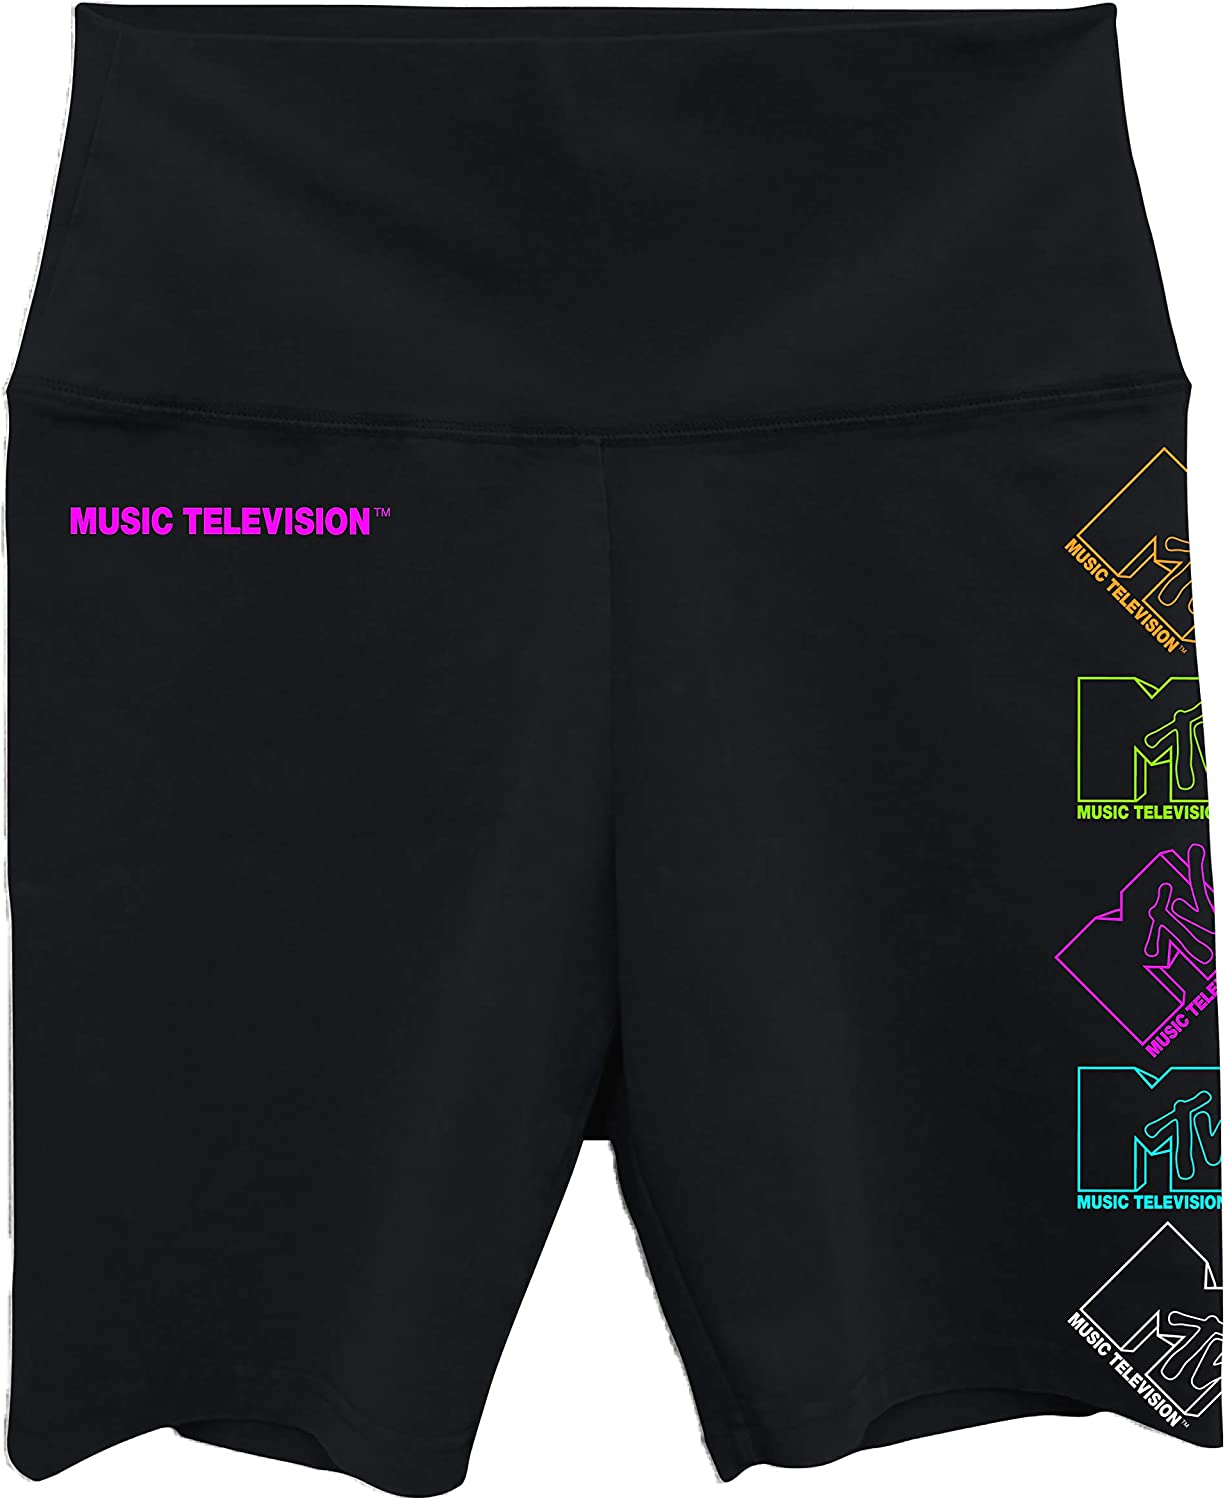 MTV Ladies Fashion Bike Short - #TBT Ladies 1980's Clothing - I Want My Logo Spandex Bike Shorts